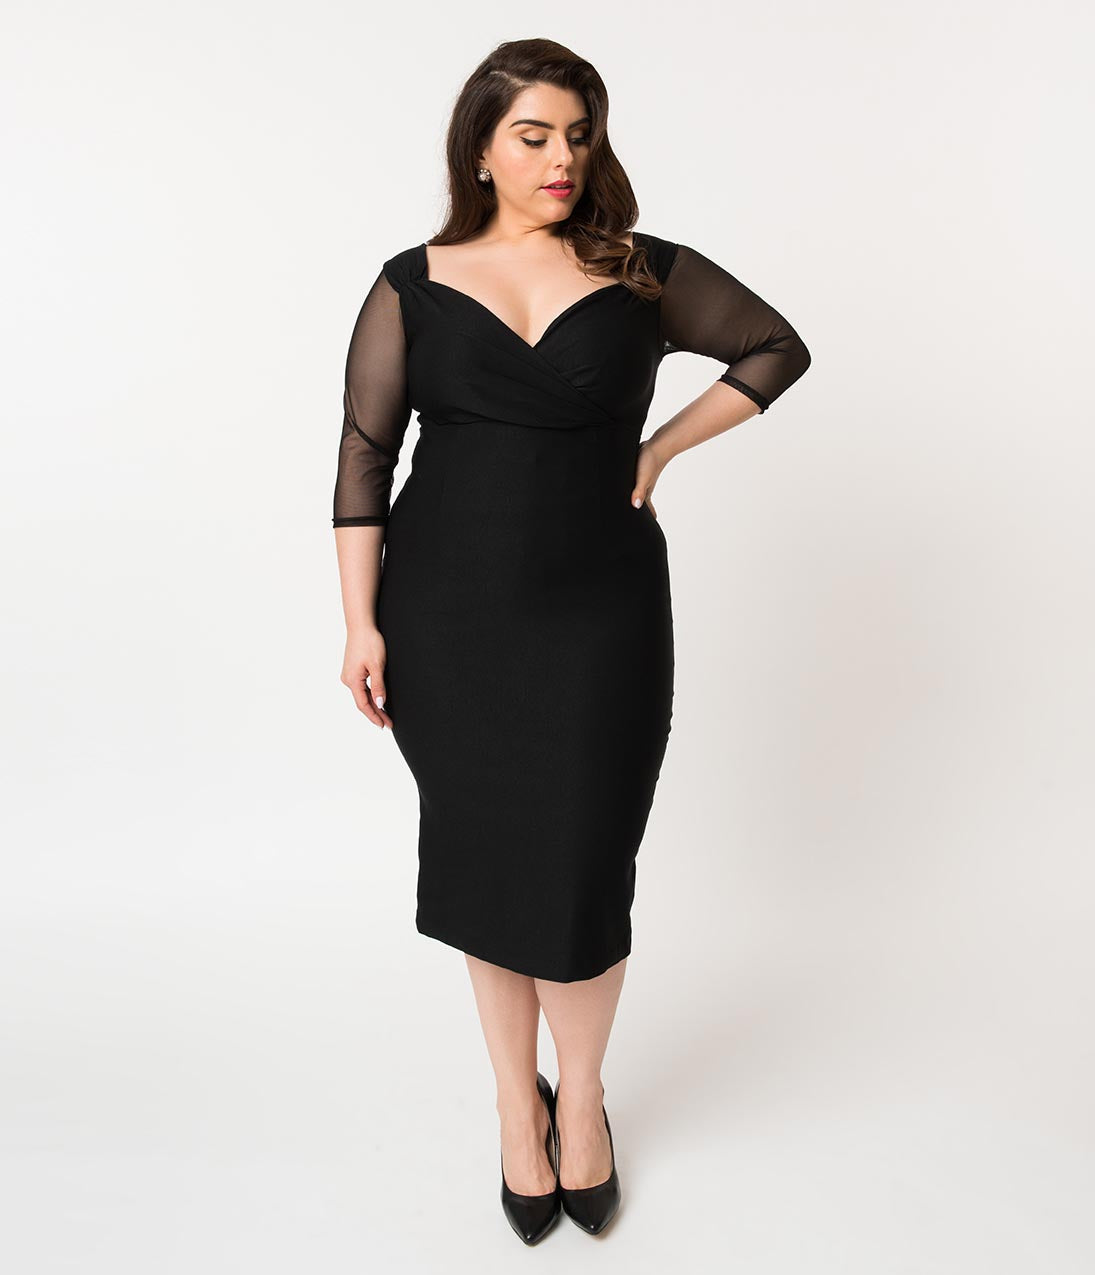 1940s Plus Size Clothing: Dresses History Steady Plus Size Black Madame La Mort Sheer Sleeve Diva Wiggle Dress $82.00 AT vintagedancer.com